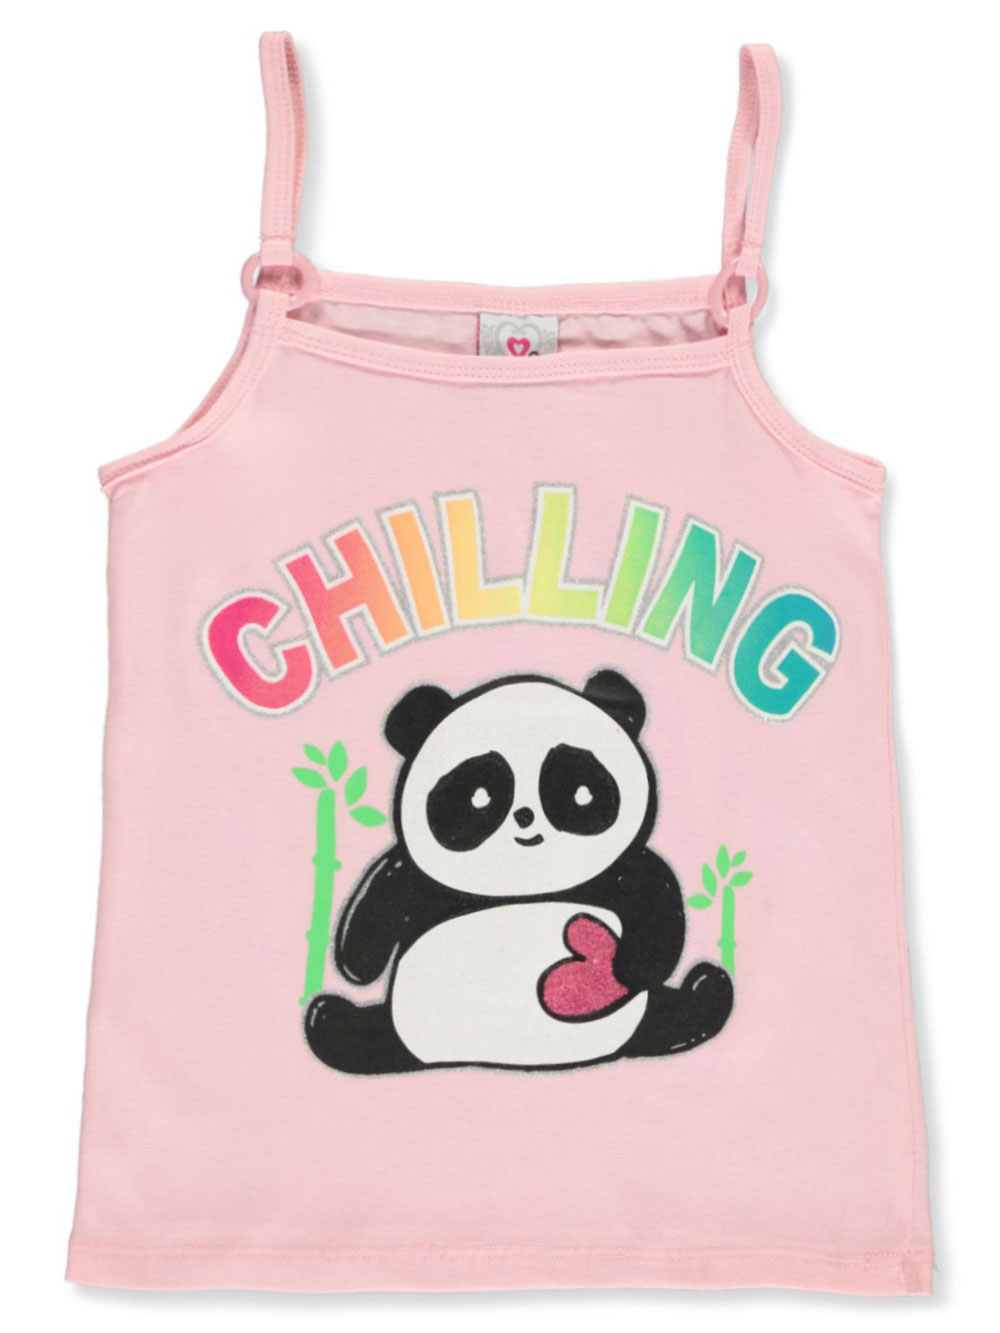 Size 4t Tank Tops for Girls